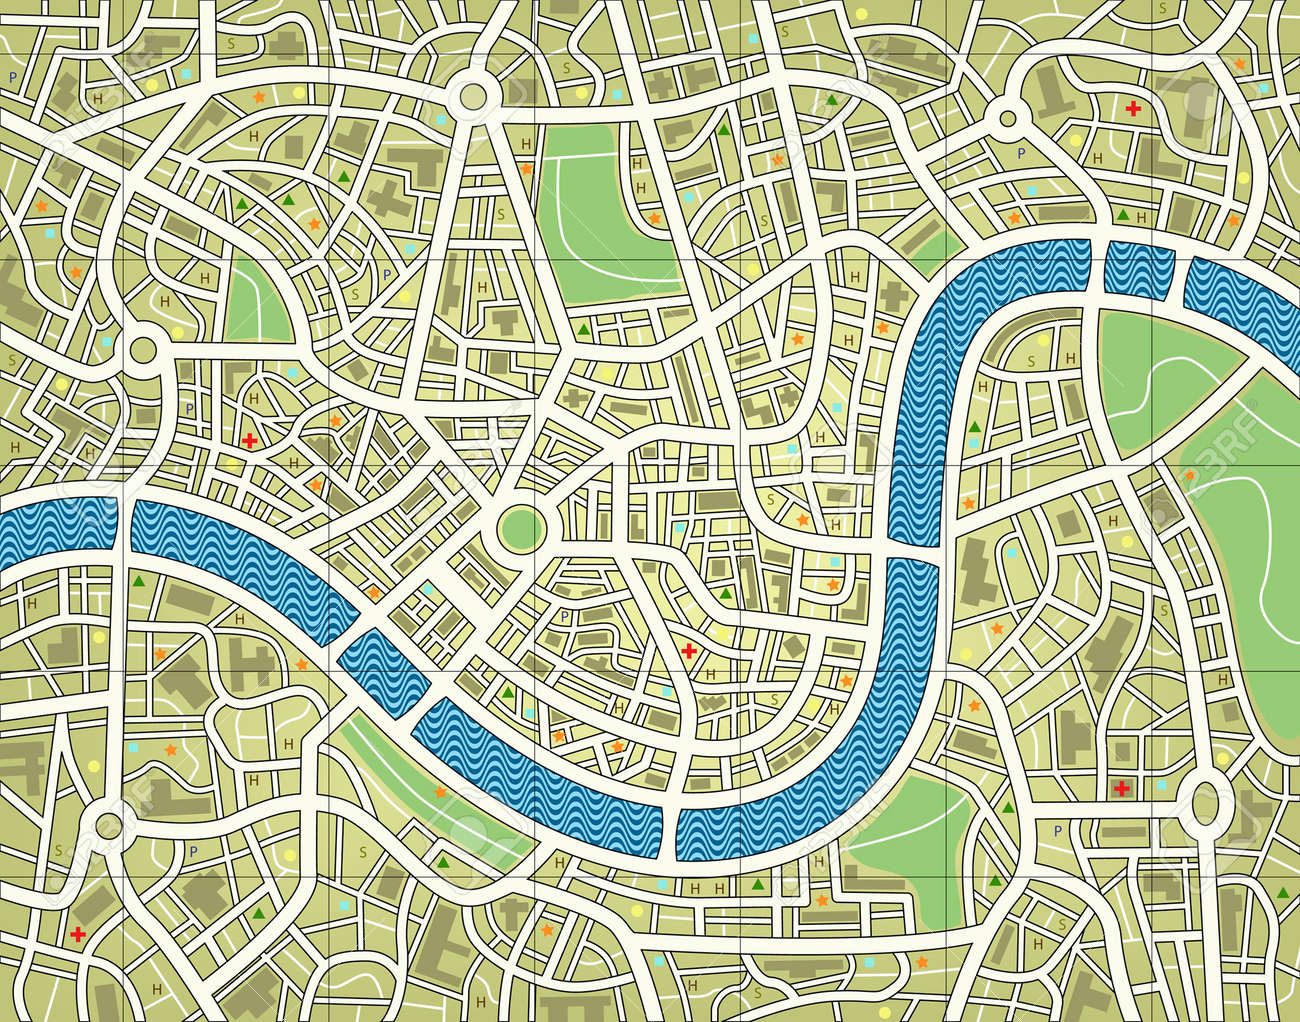 Editable vector illustration of a street map without names Stock Vector - 3088902